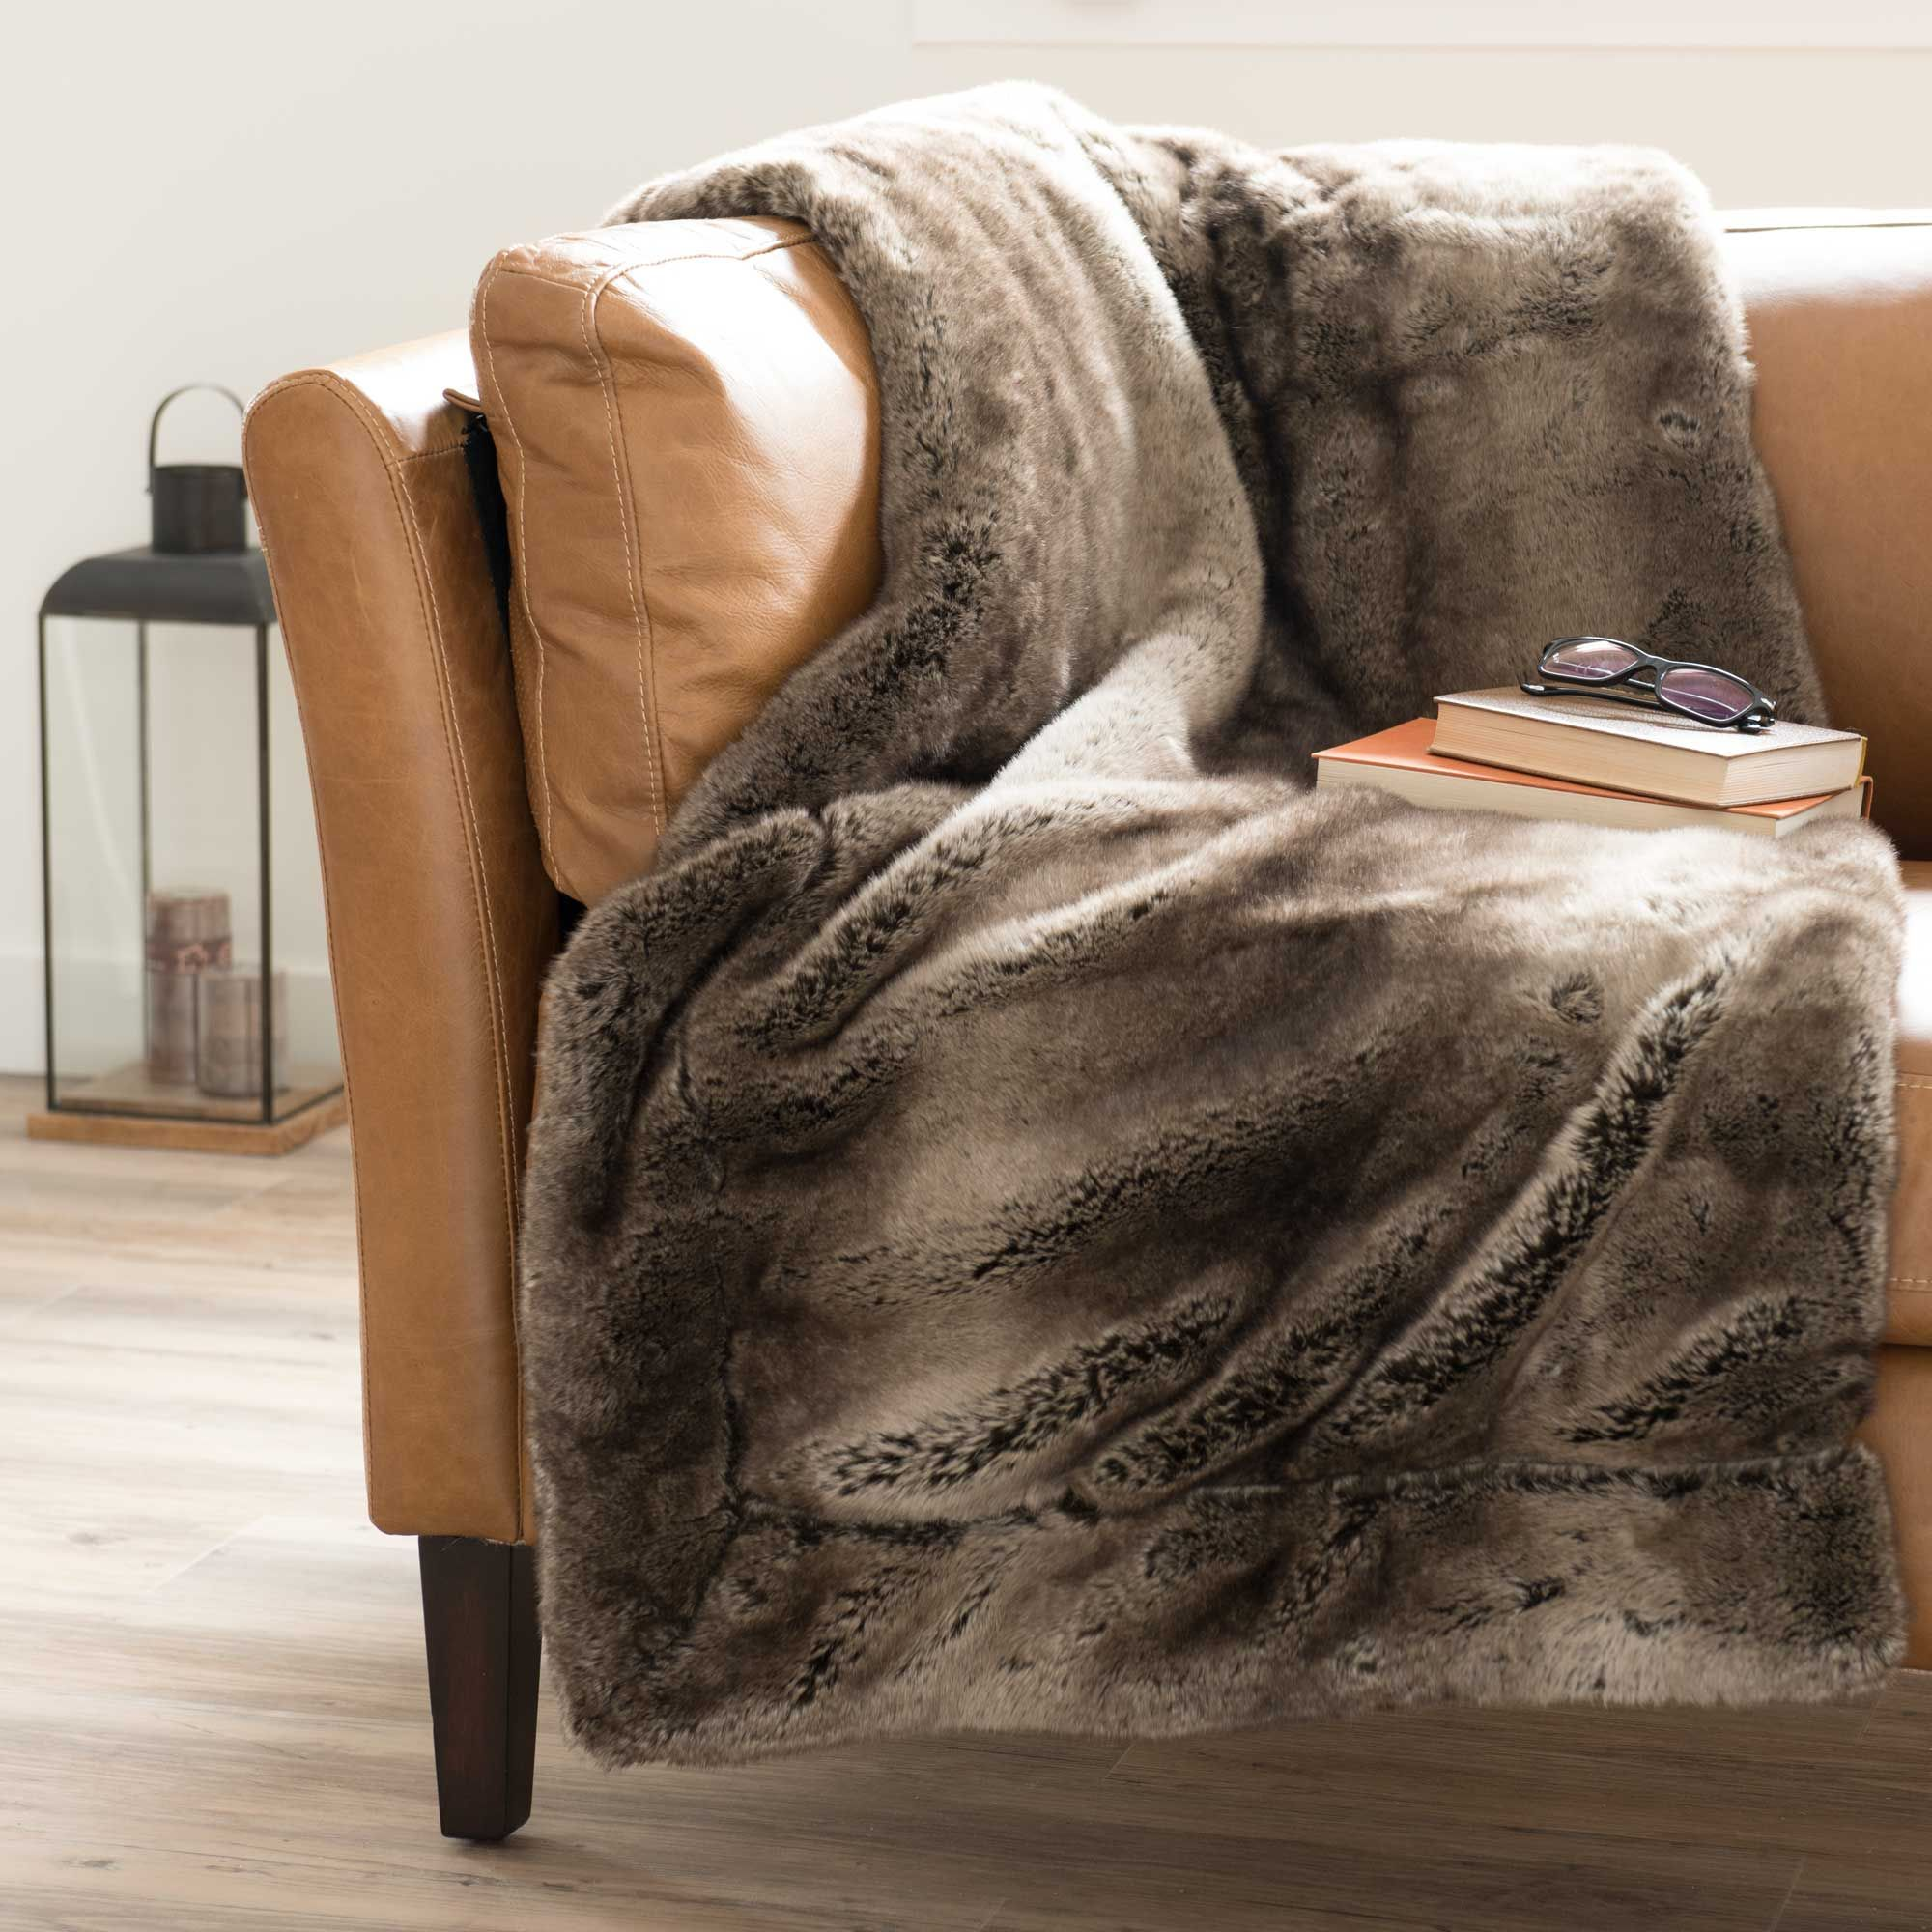 Maison Du Monde Plaid Faux Fur Blanket In Brown 150 X 180cm Lounge Ideas Faux Fur